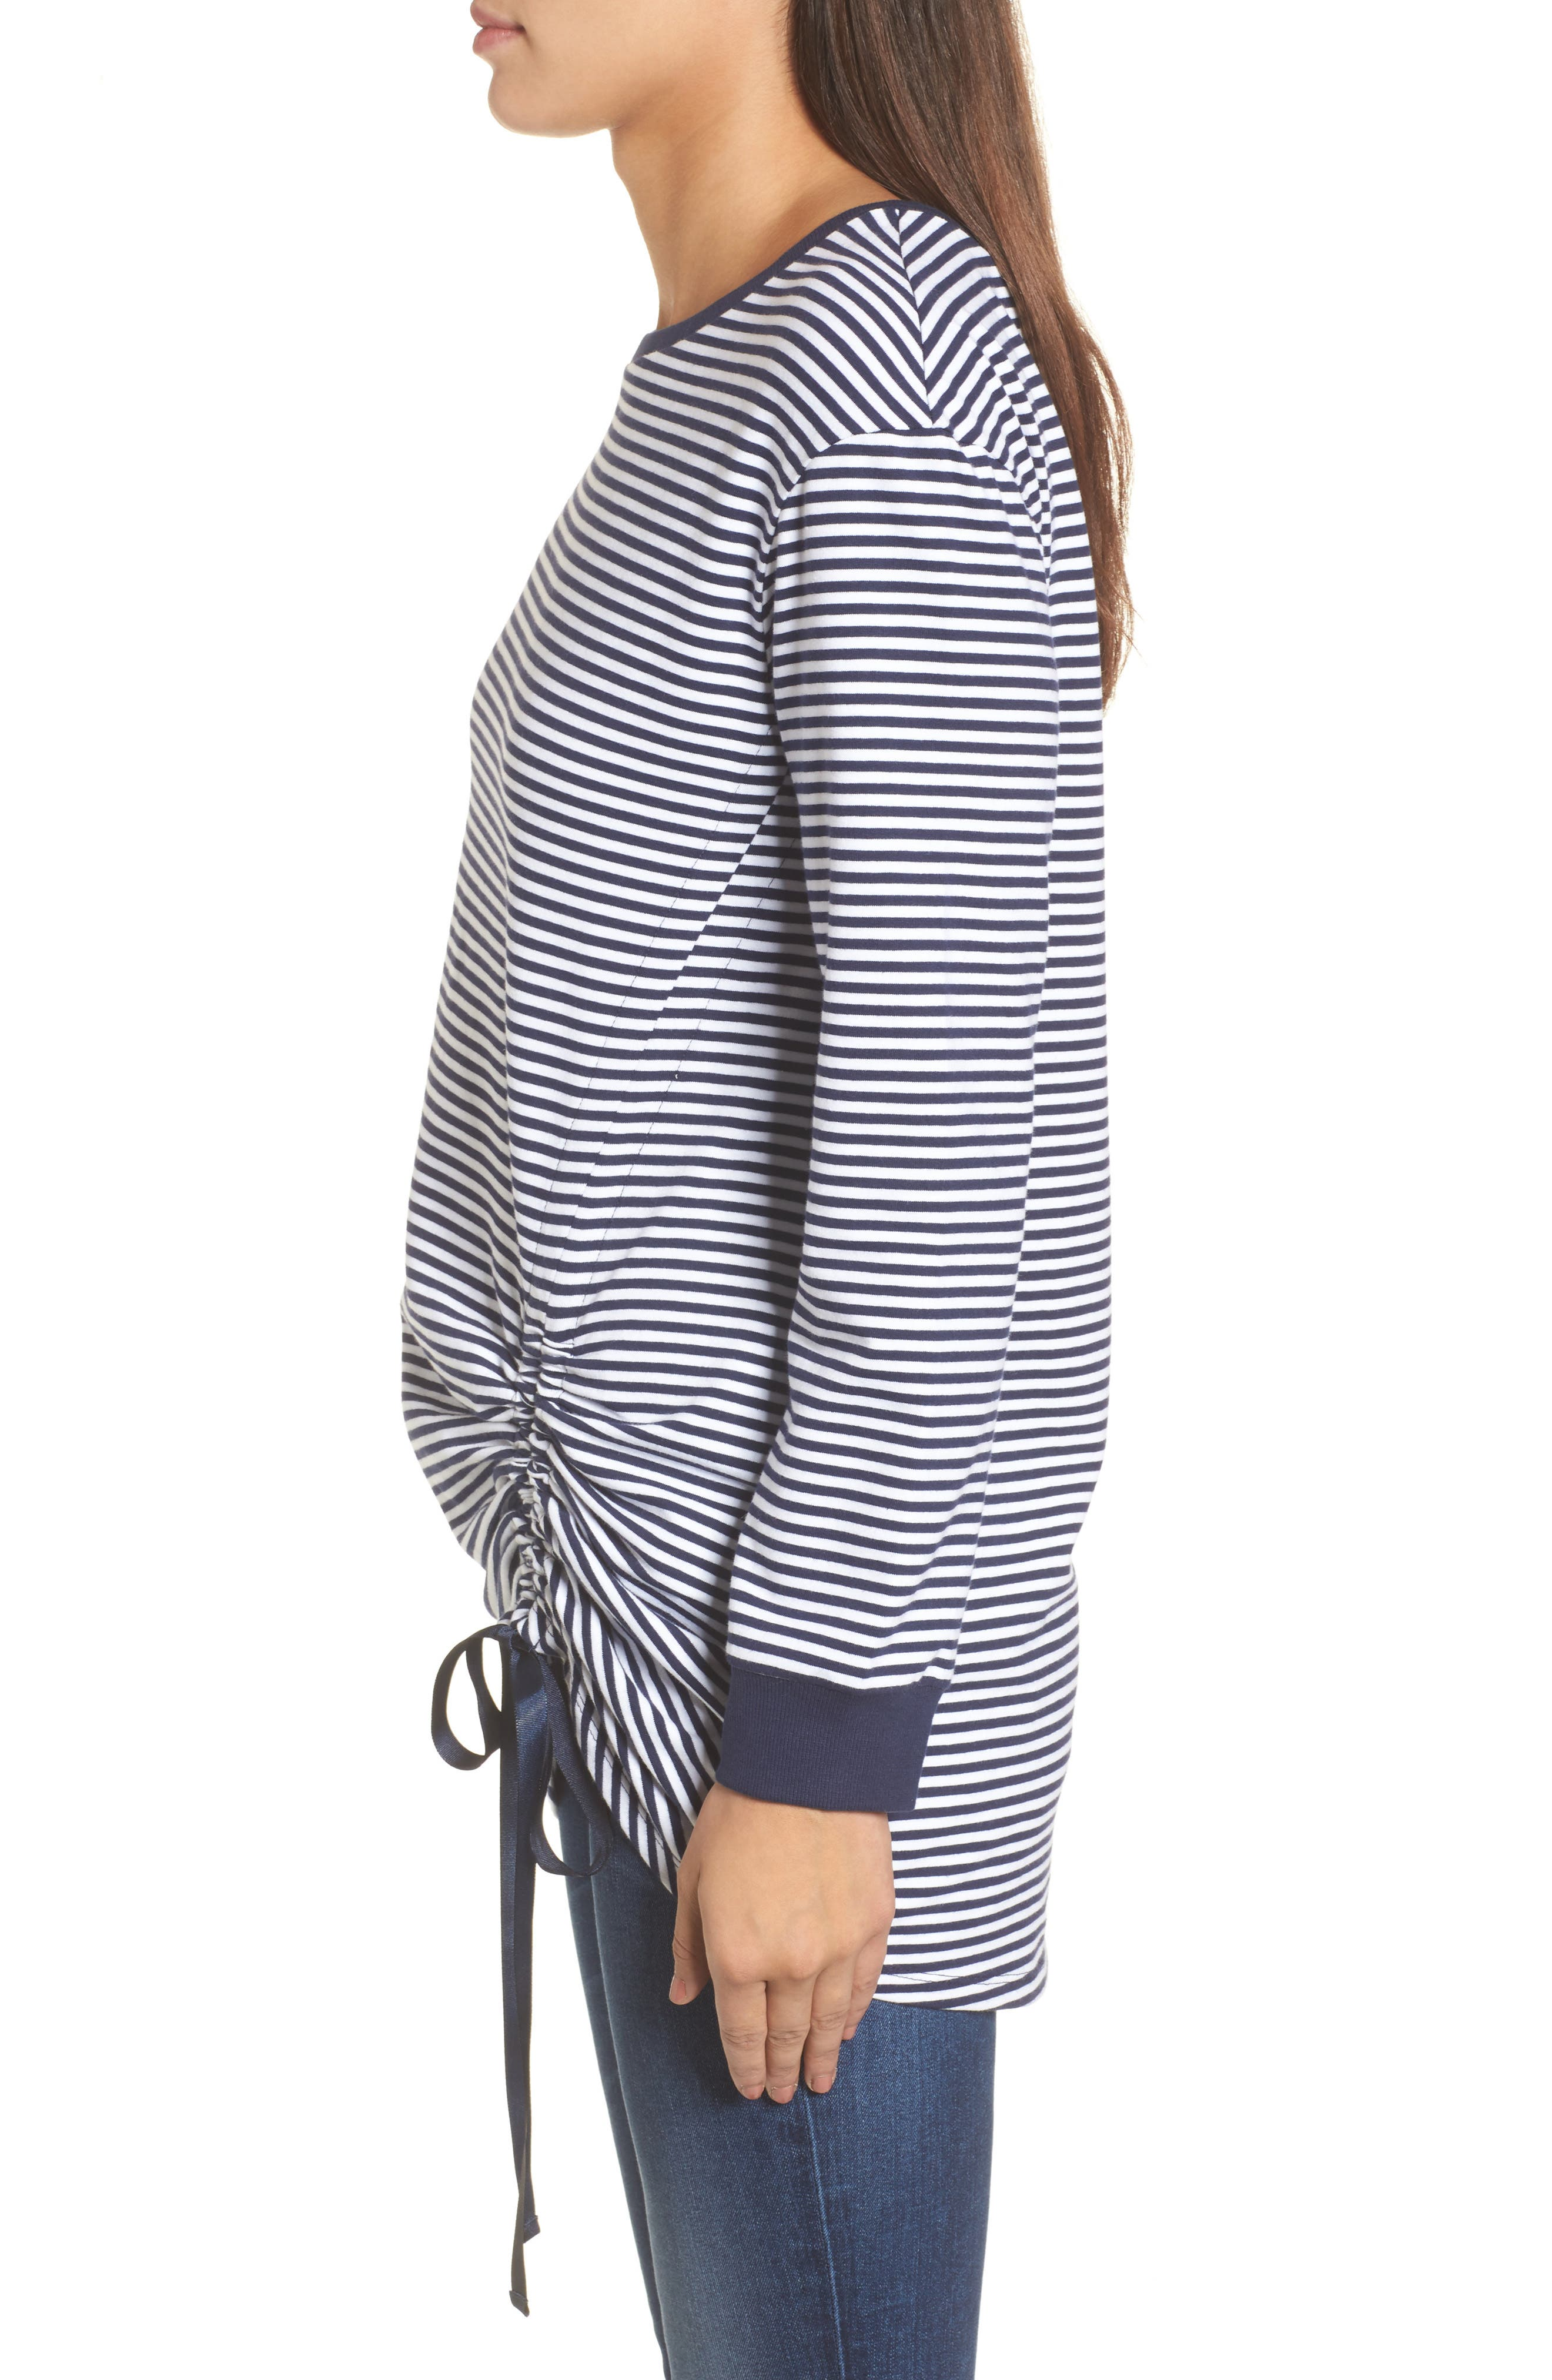 Ruched Front Tunic Sweatshirt,                             Alternate thumbnail 3, color,                             Navy- White Stripe